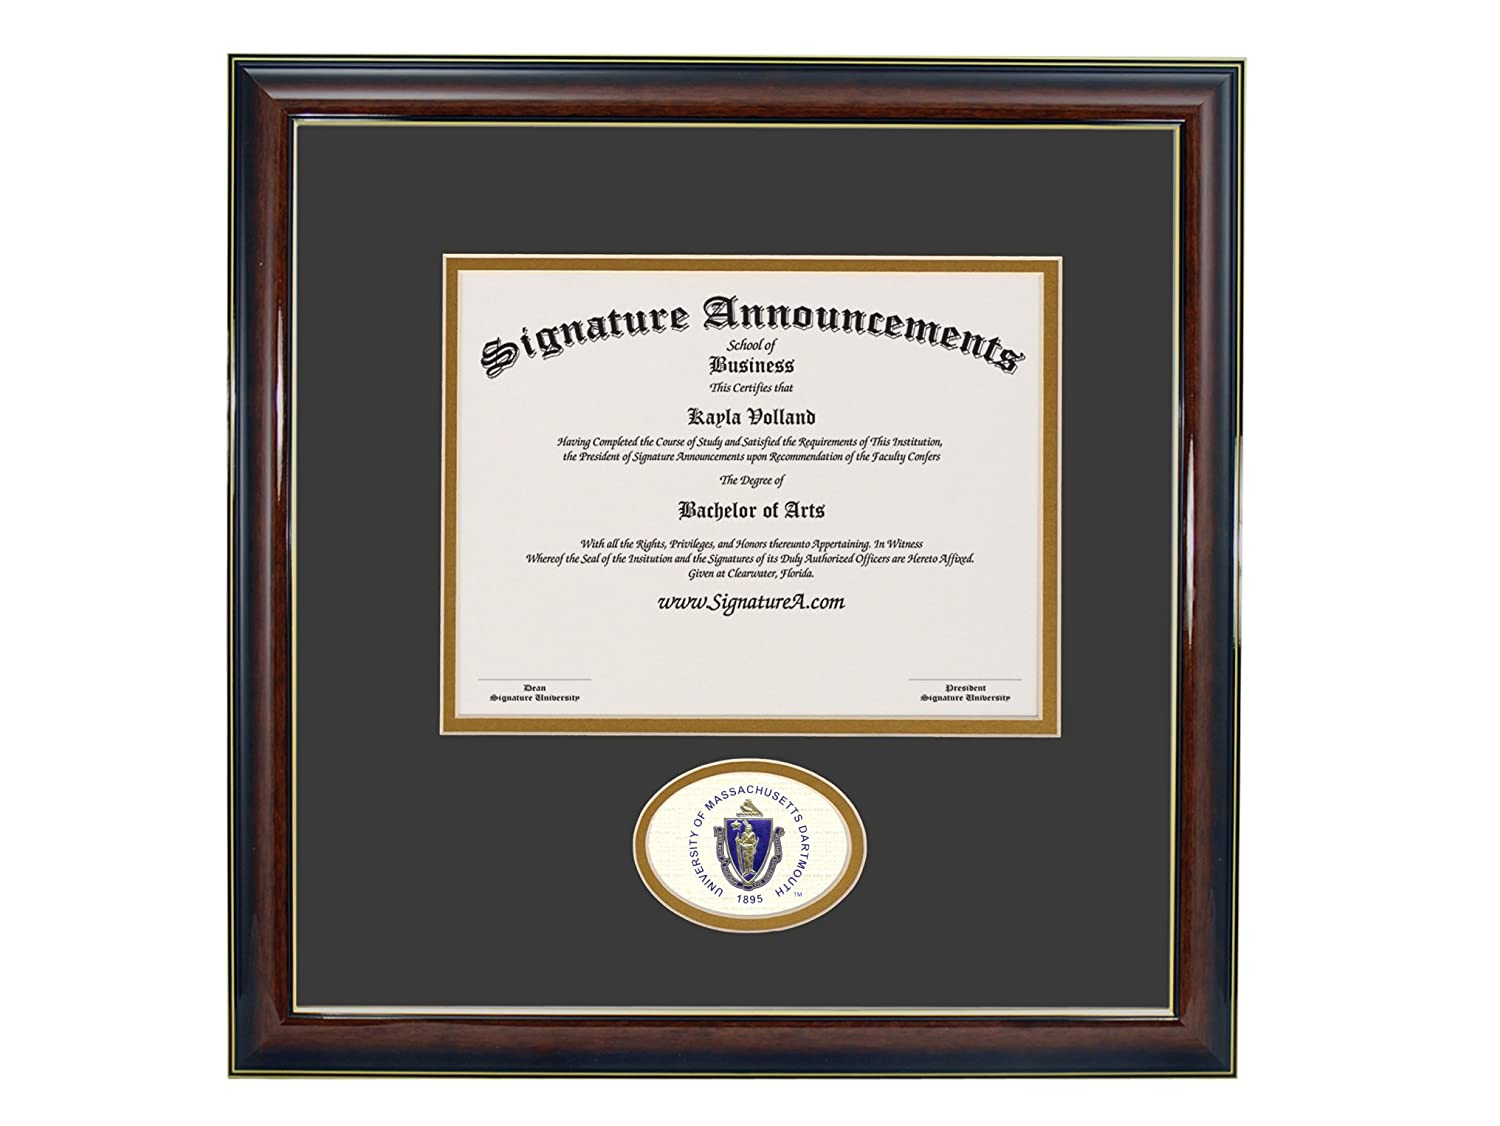 Signature AnnouncementsUniversity-of-Massachusetts-Dartmouth Doctorate Sculpted Foil Seal Graduation Diploma Frame 20 x 20 Gloss Mahogany with Gold Accent